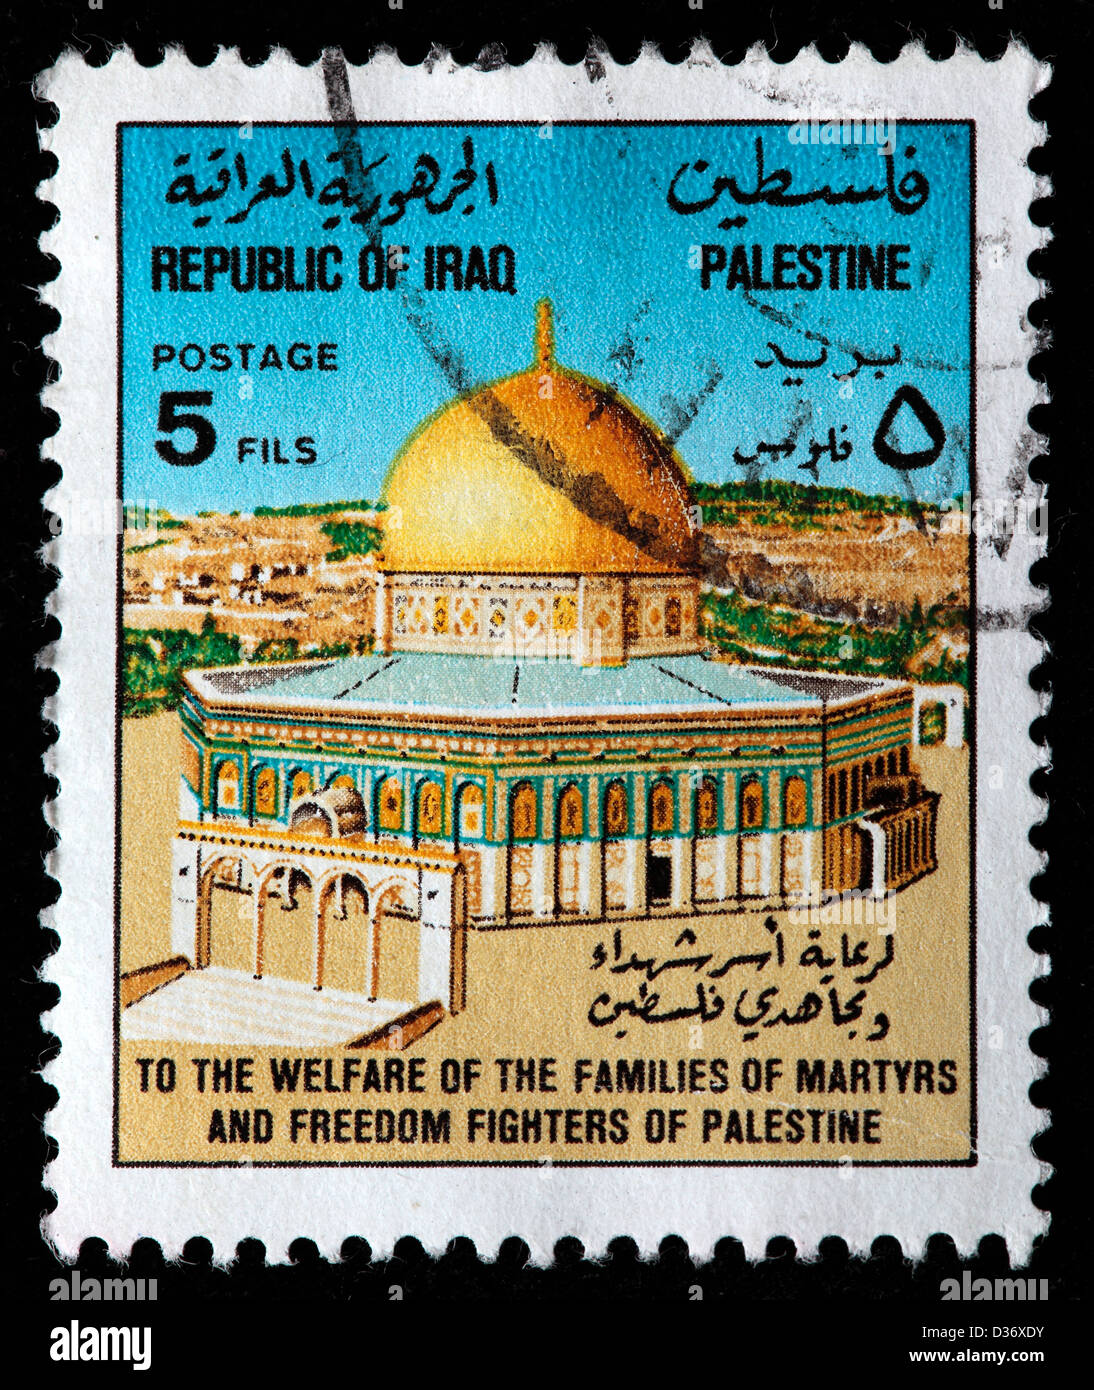 To the welfare of the families of martyrs and freedom fighters of Palestine, postage stamp, Iraq, 1992 - Stock Image